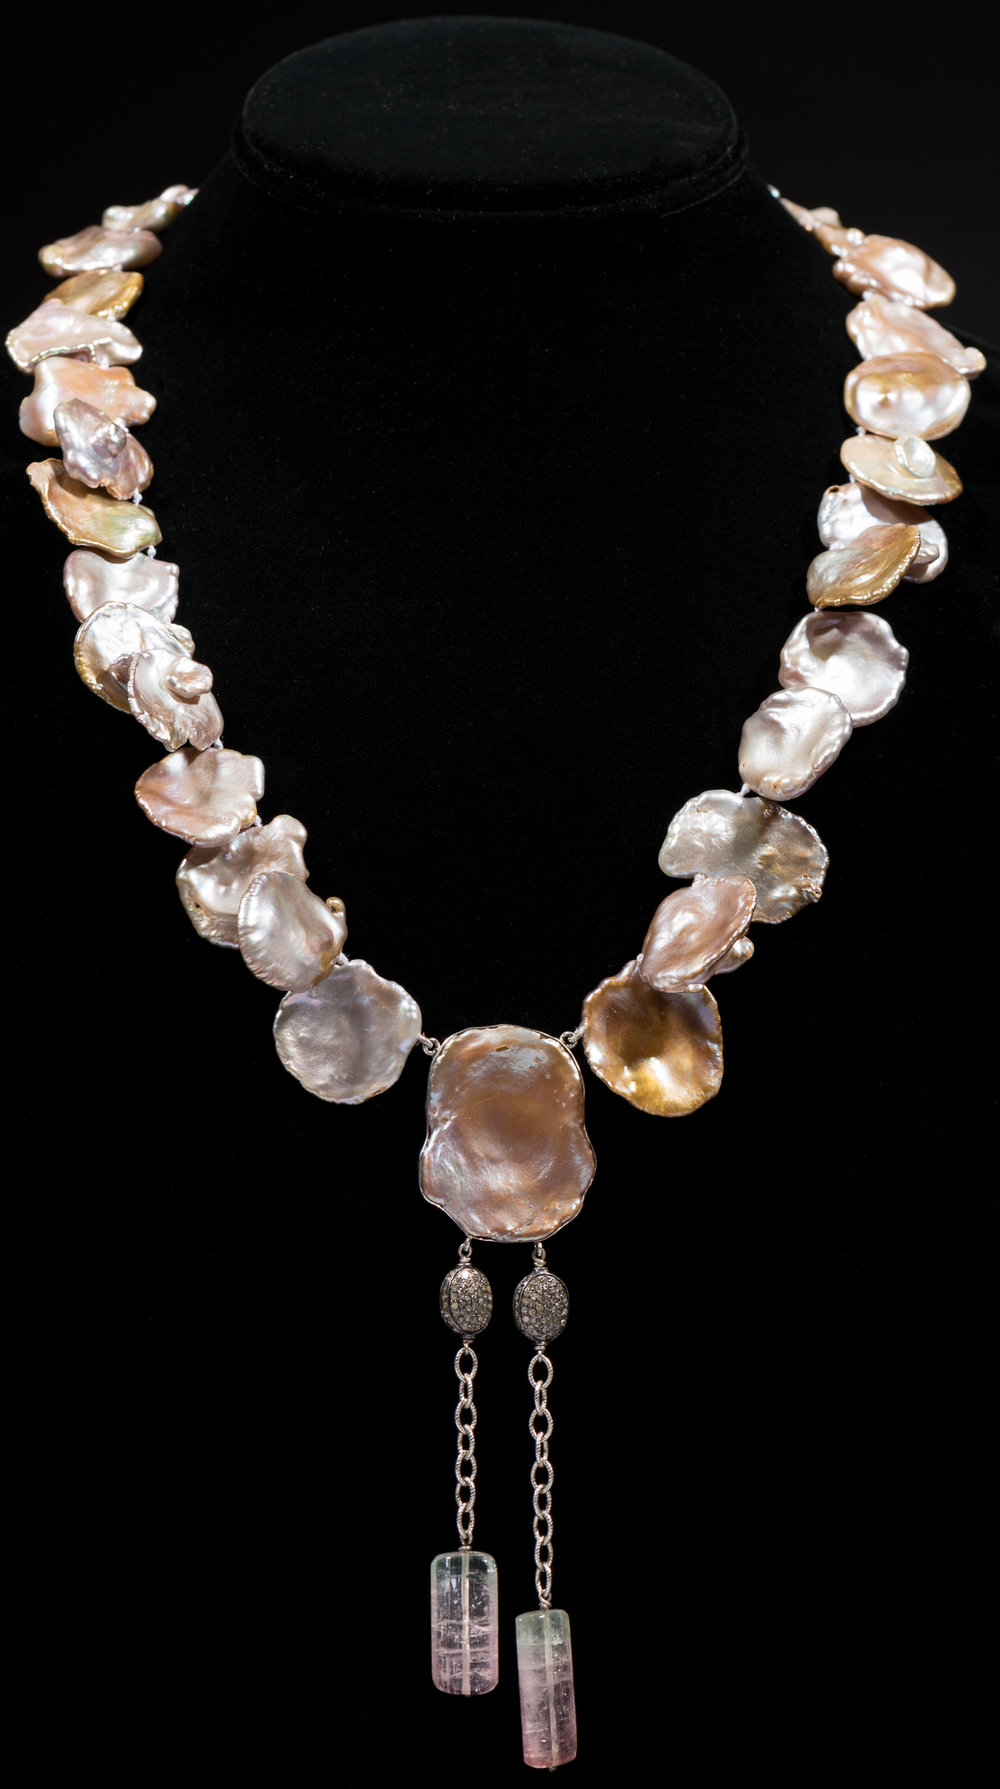 Cornflake freshwater pearls with center pearl encased in sterling silver with pave diamond and tourmaline drop.